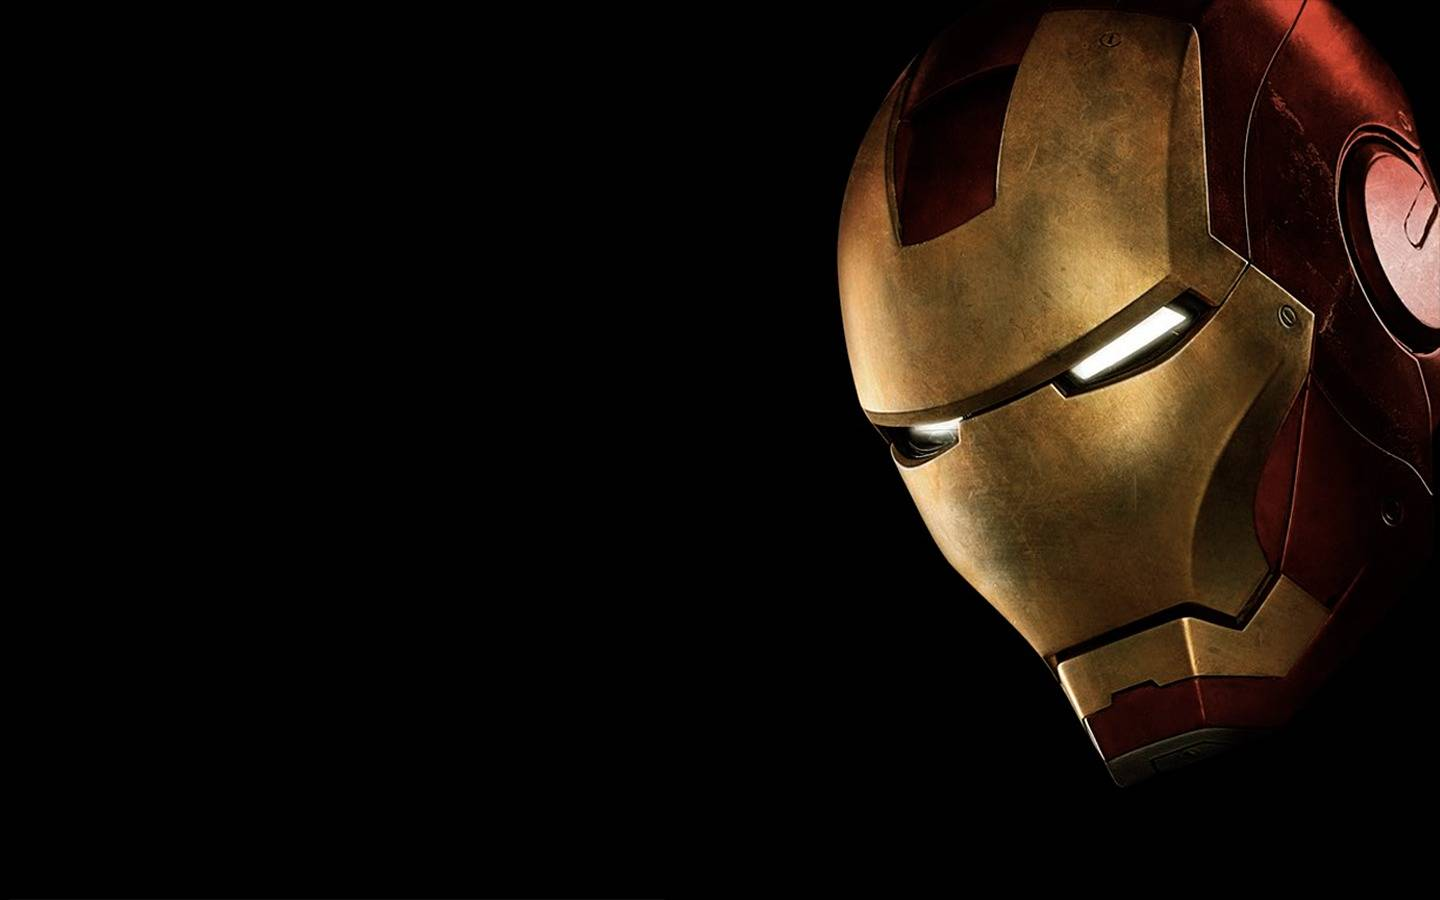 HD Wallpapers | Desktop Wallpapers 1080p: IRON MAN 3 ...